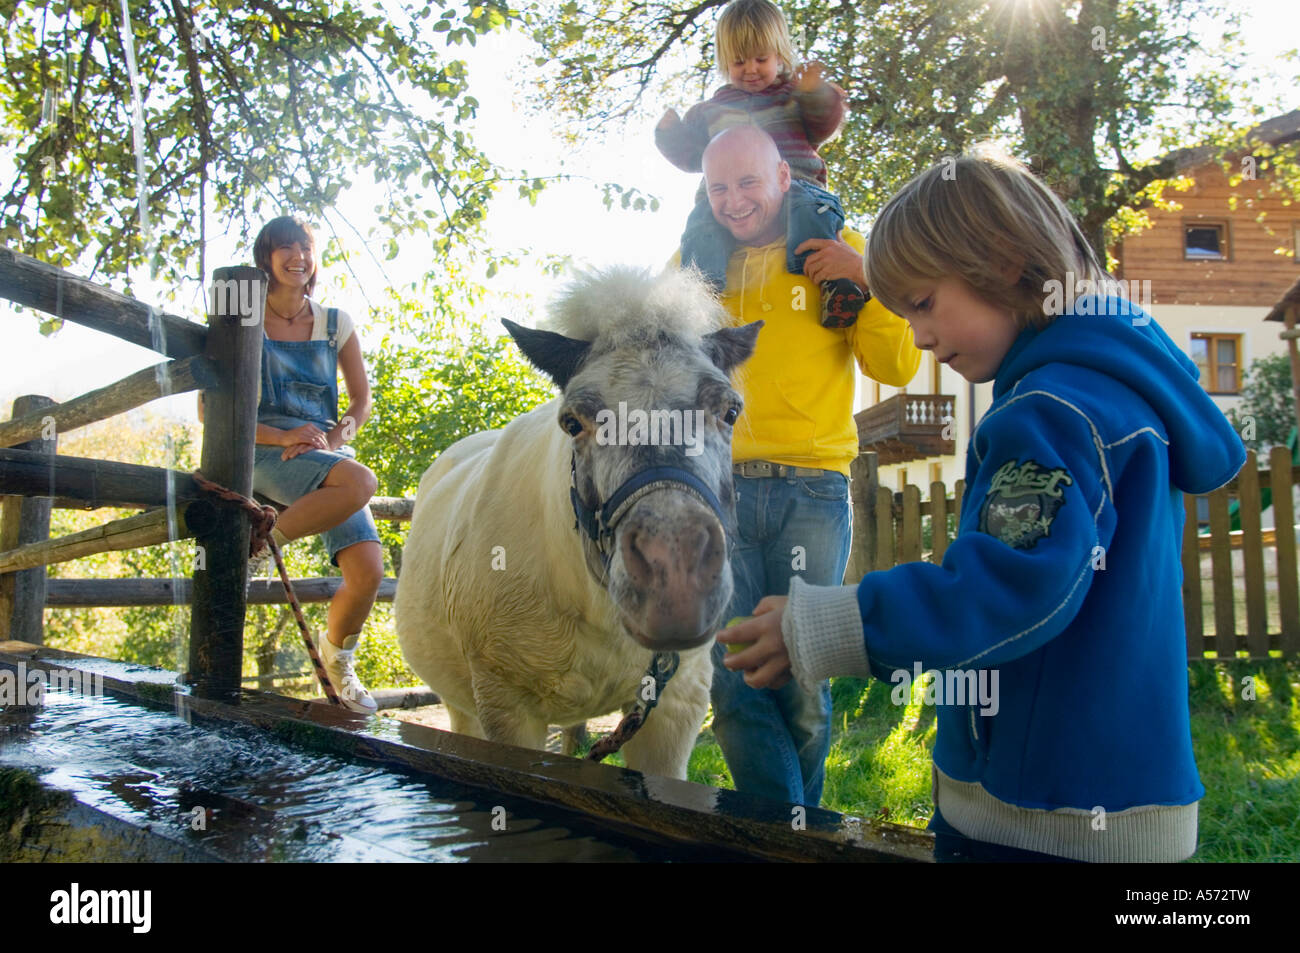 Family watching pony at fountain - Stock Image